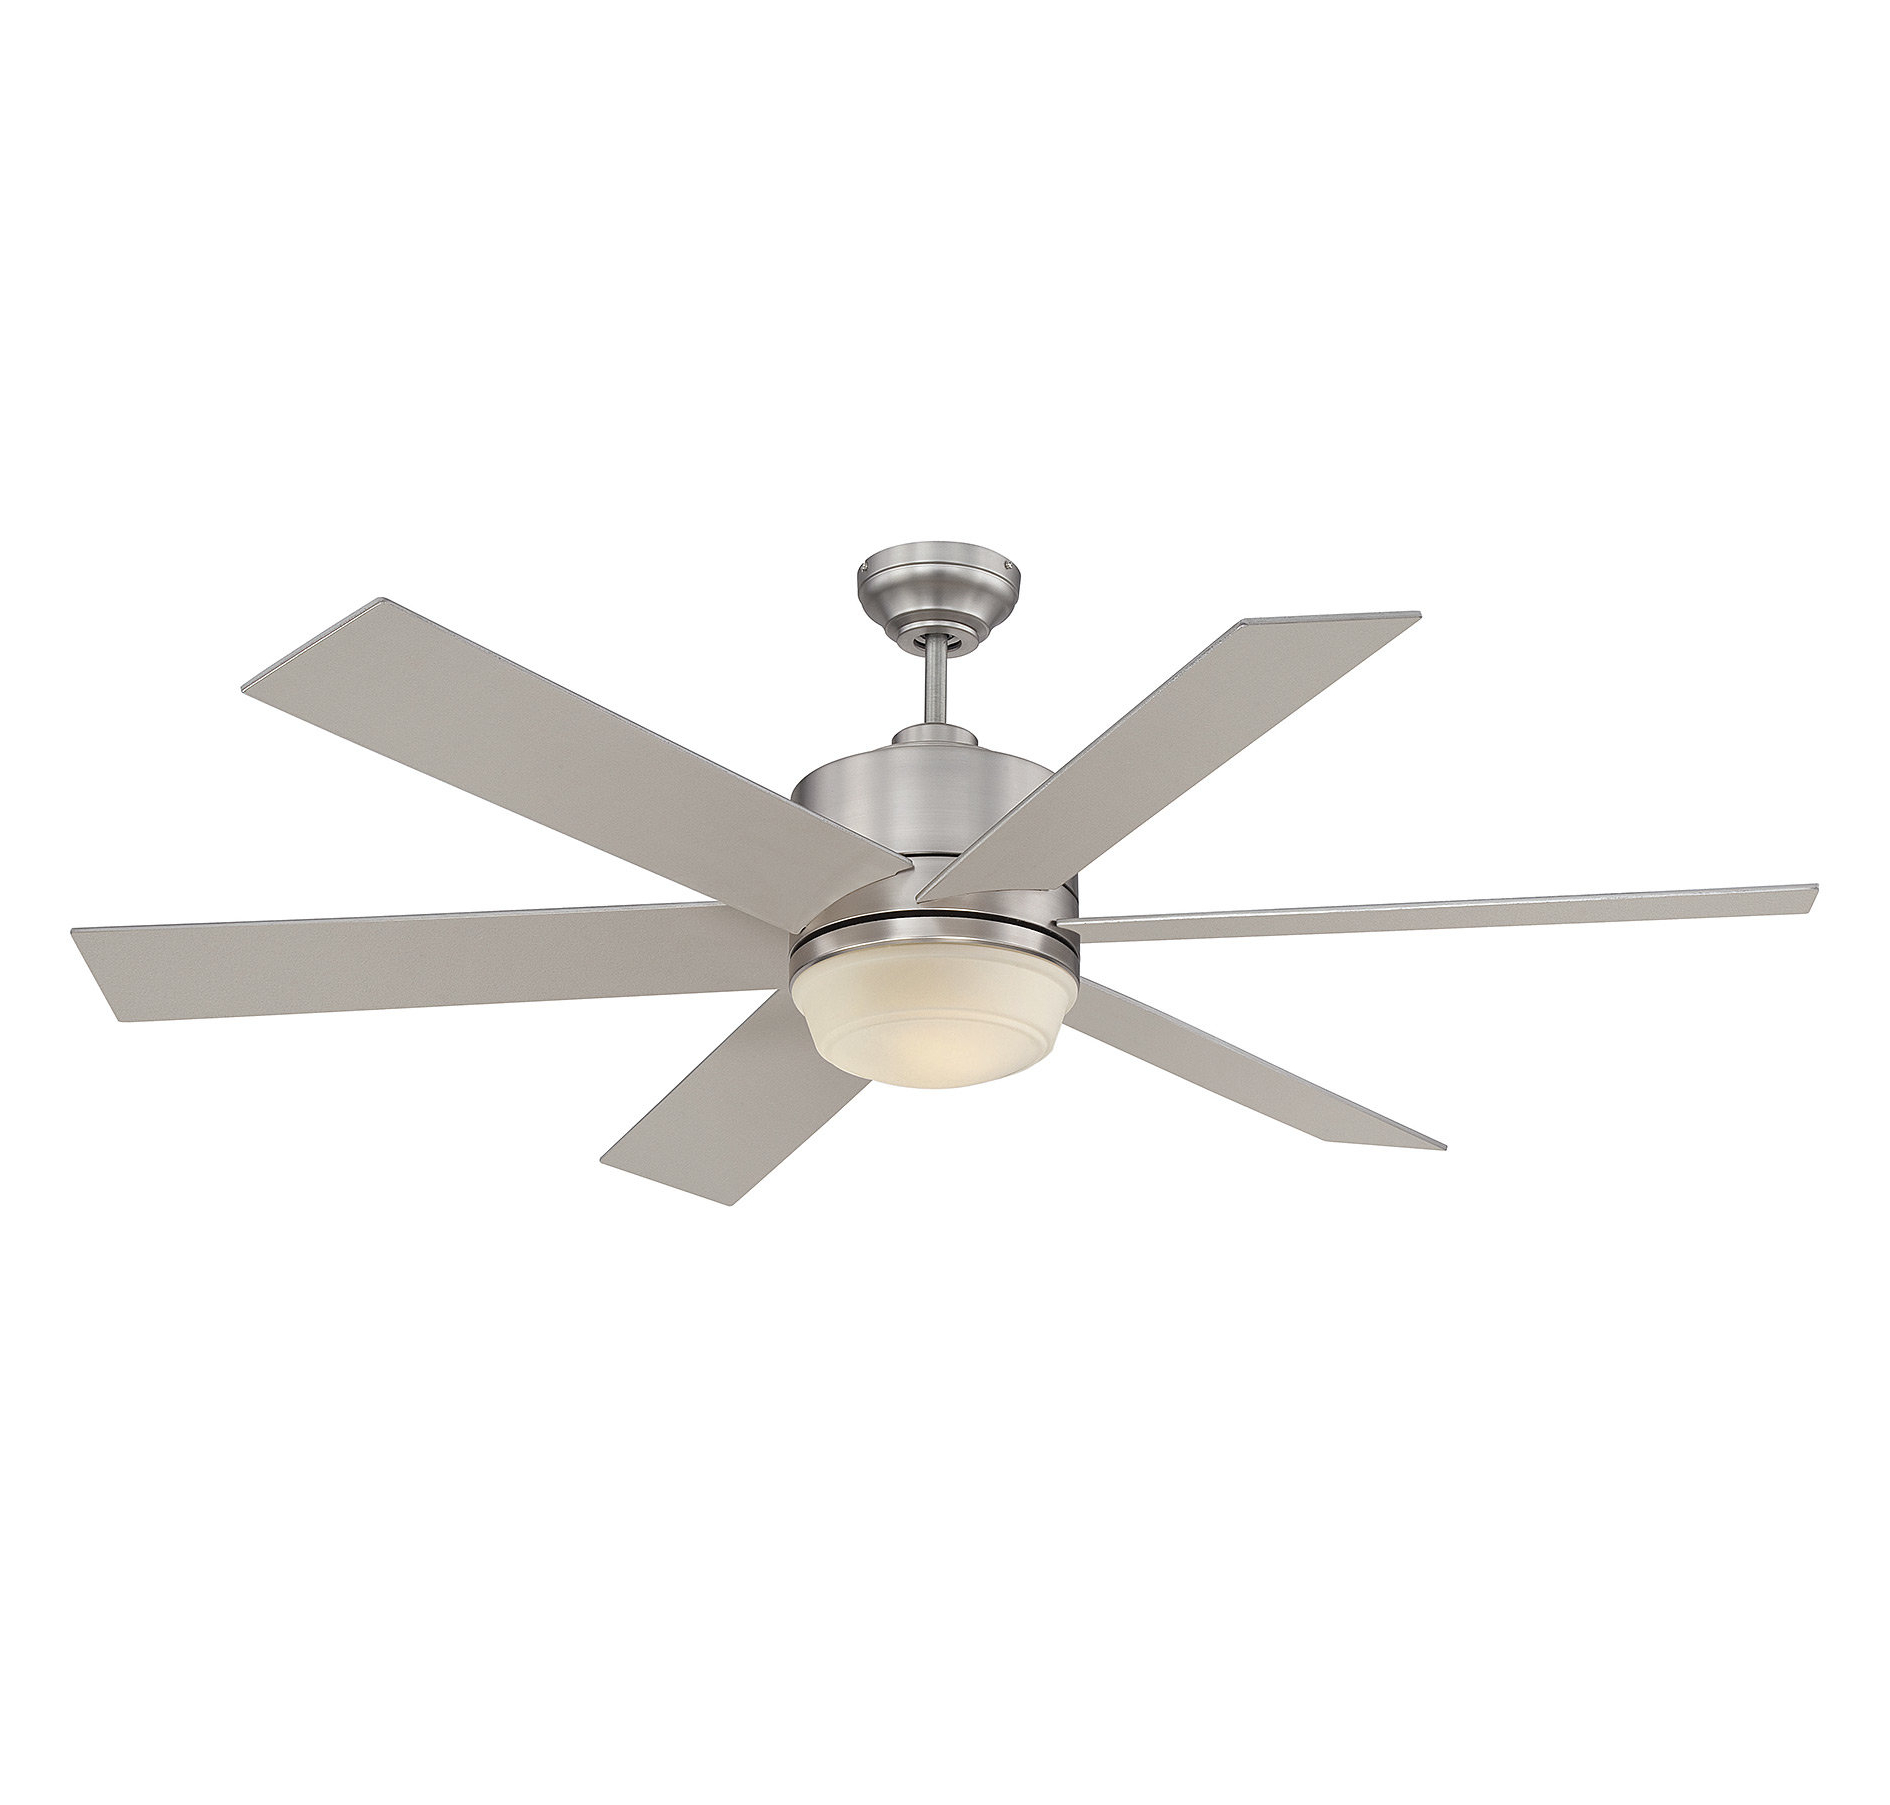 "Cillian 6 Blade Ceiling Fans With Regard To 2020 60"" Ayleen 6 Blade Ceiling Fan With Remote, Light Kit Included (View 5 of 20)"